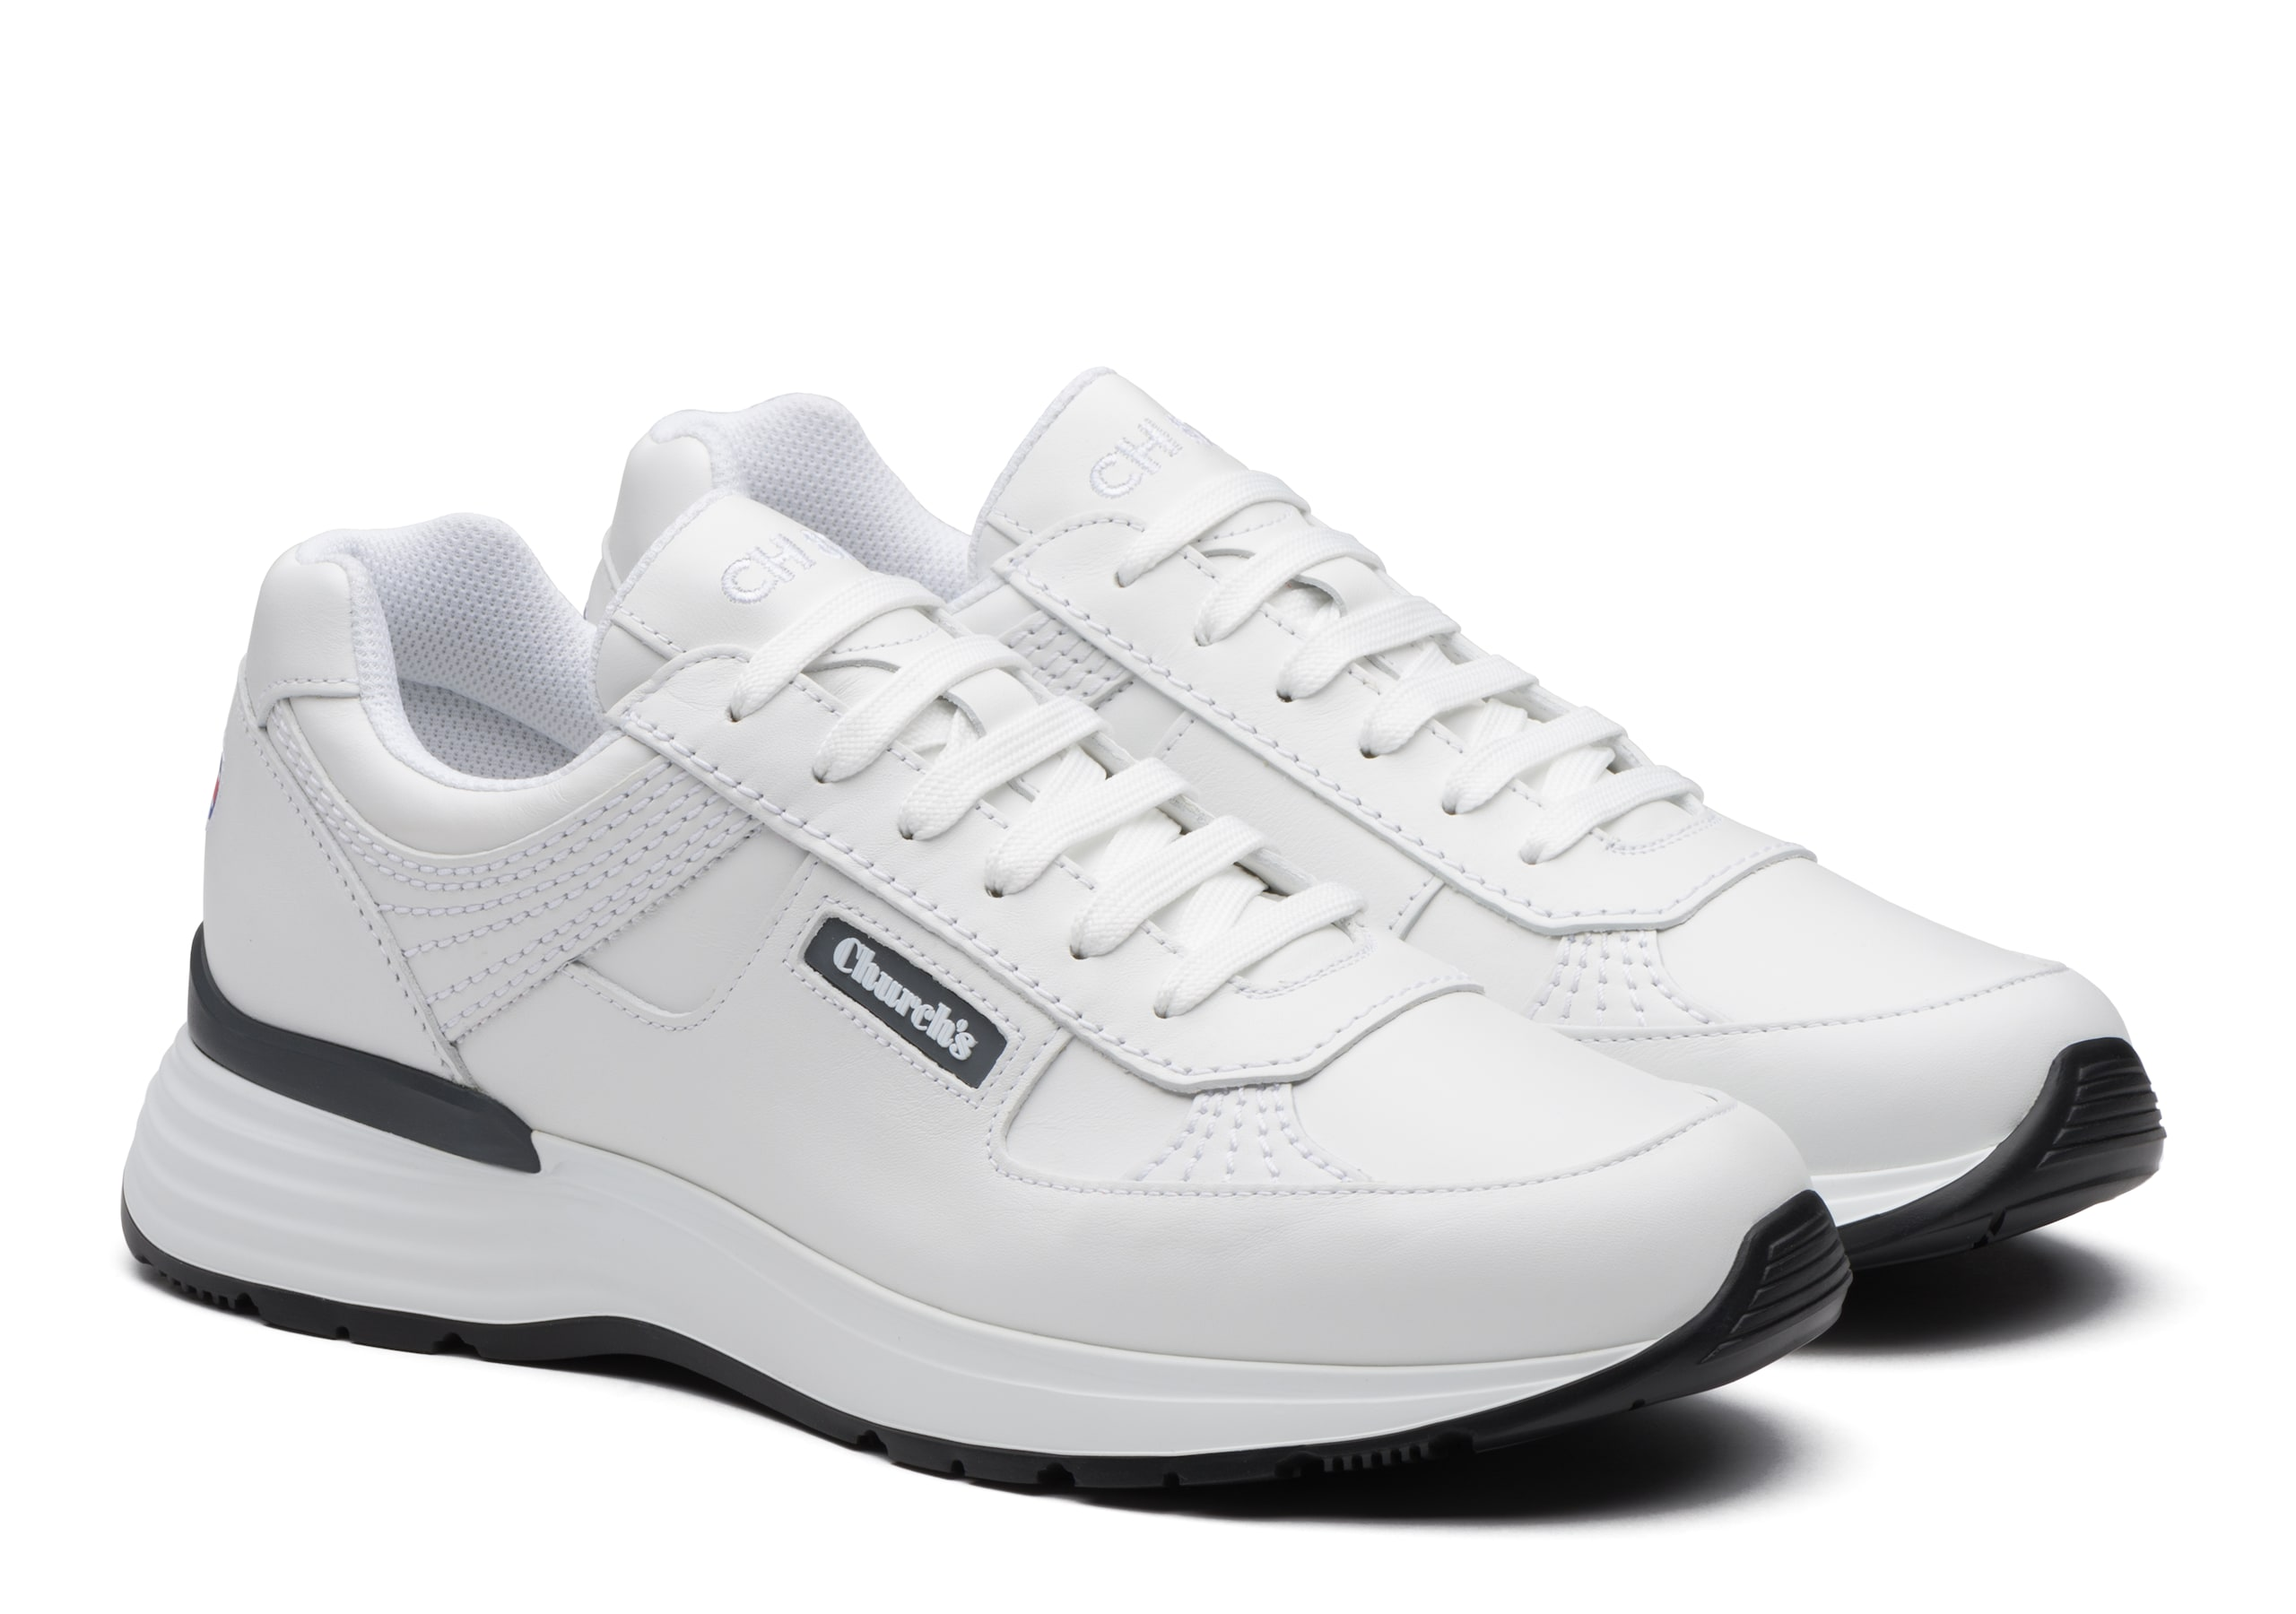 Ch873 Church's Plume Calf Leather Retro Sneaker White